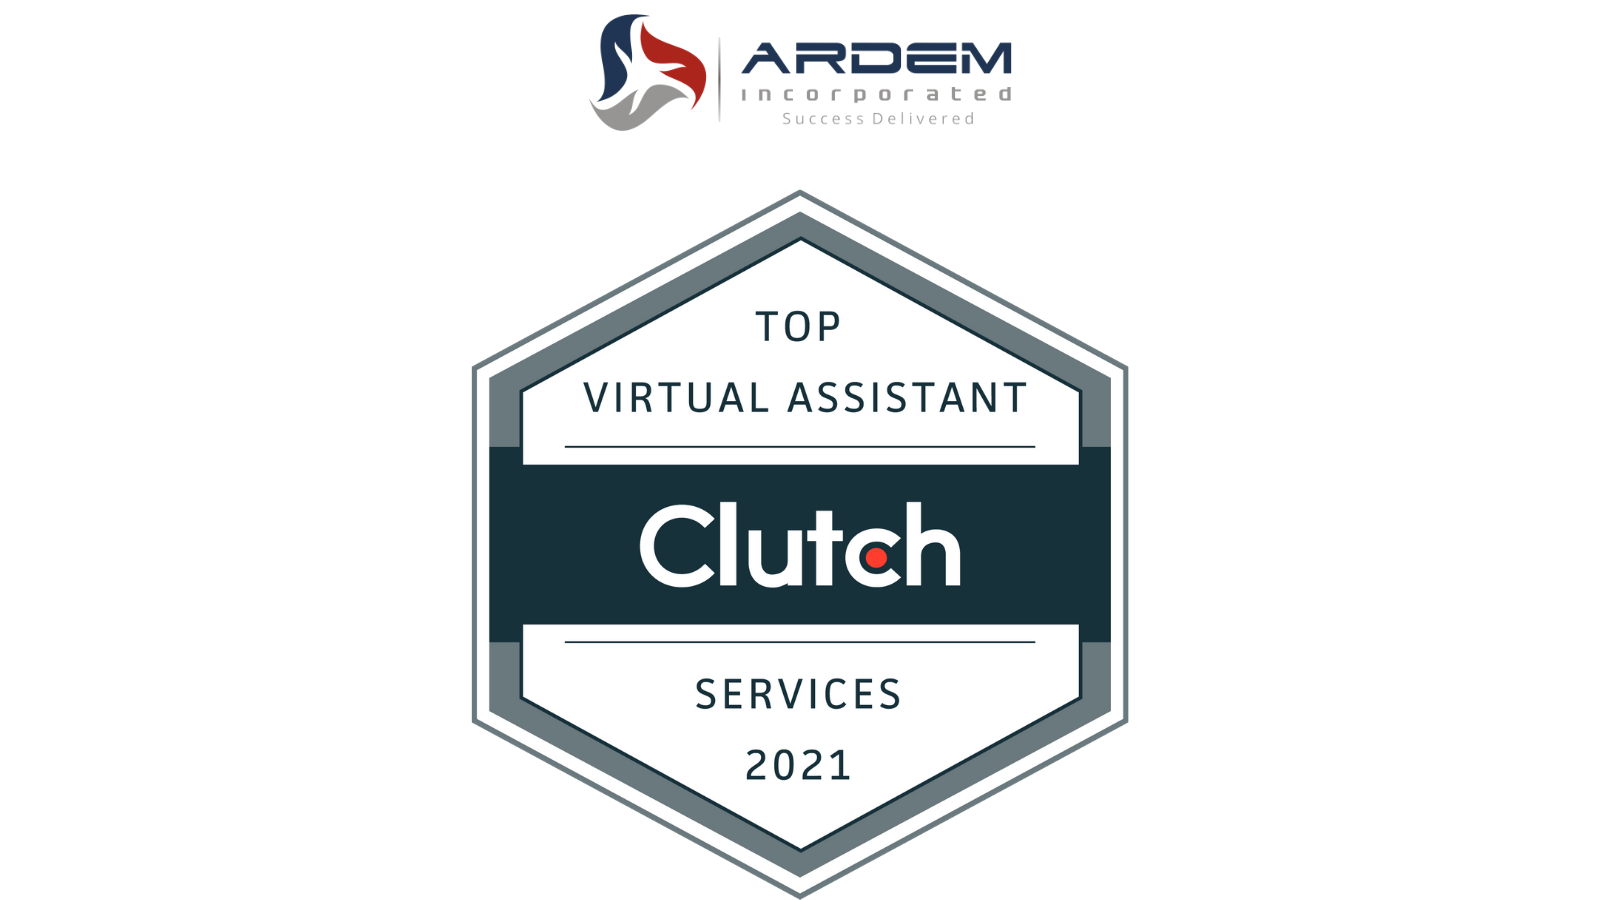 Clutch Ranks ARDEM Incorporated as a Top Virtual Assistant Provider